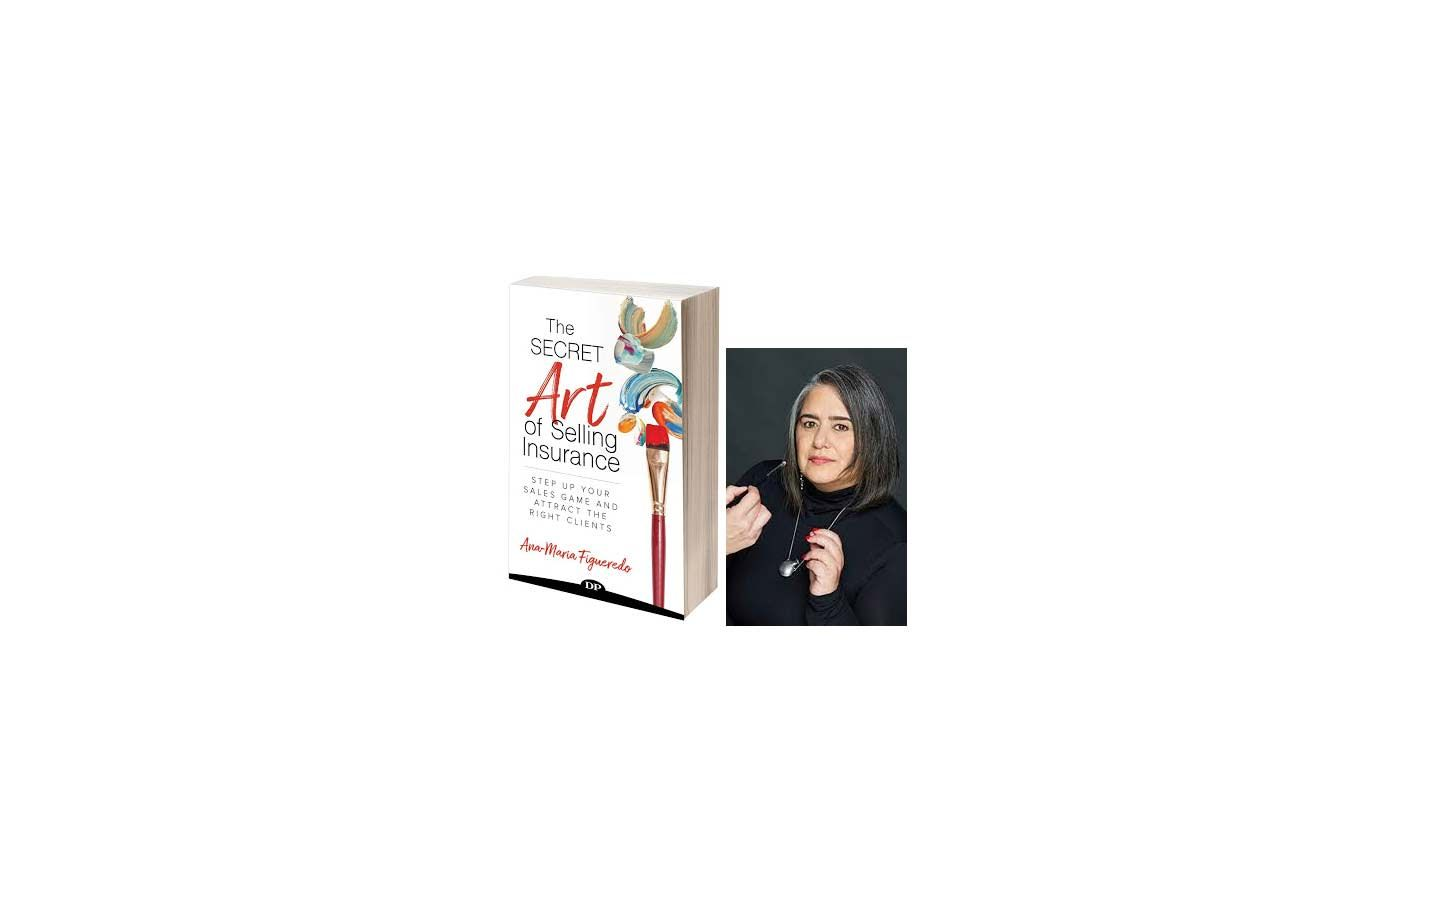 The Secret Art of Selling Insurance Book by Ana-Maria Figueredo